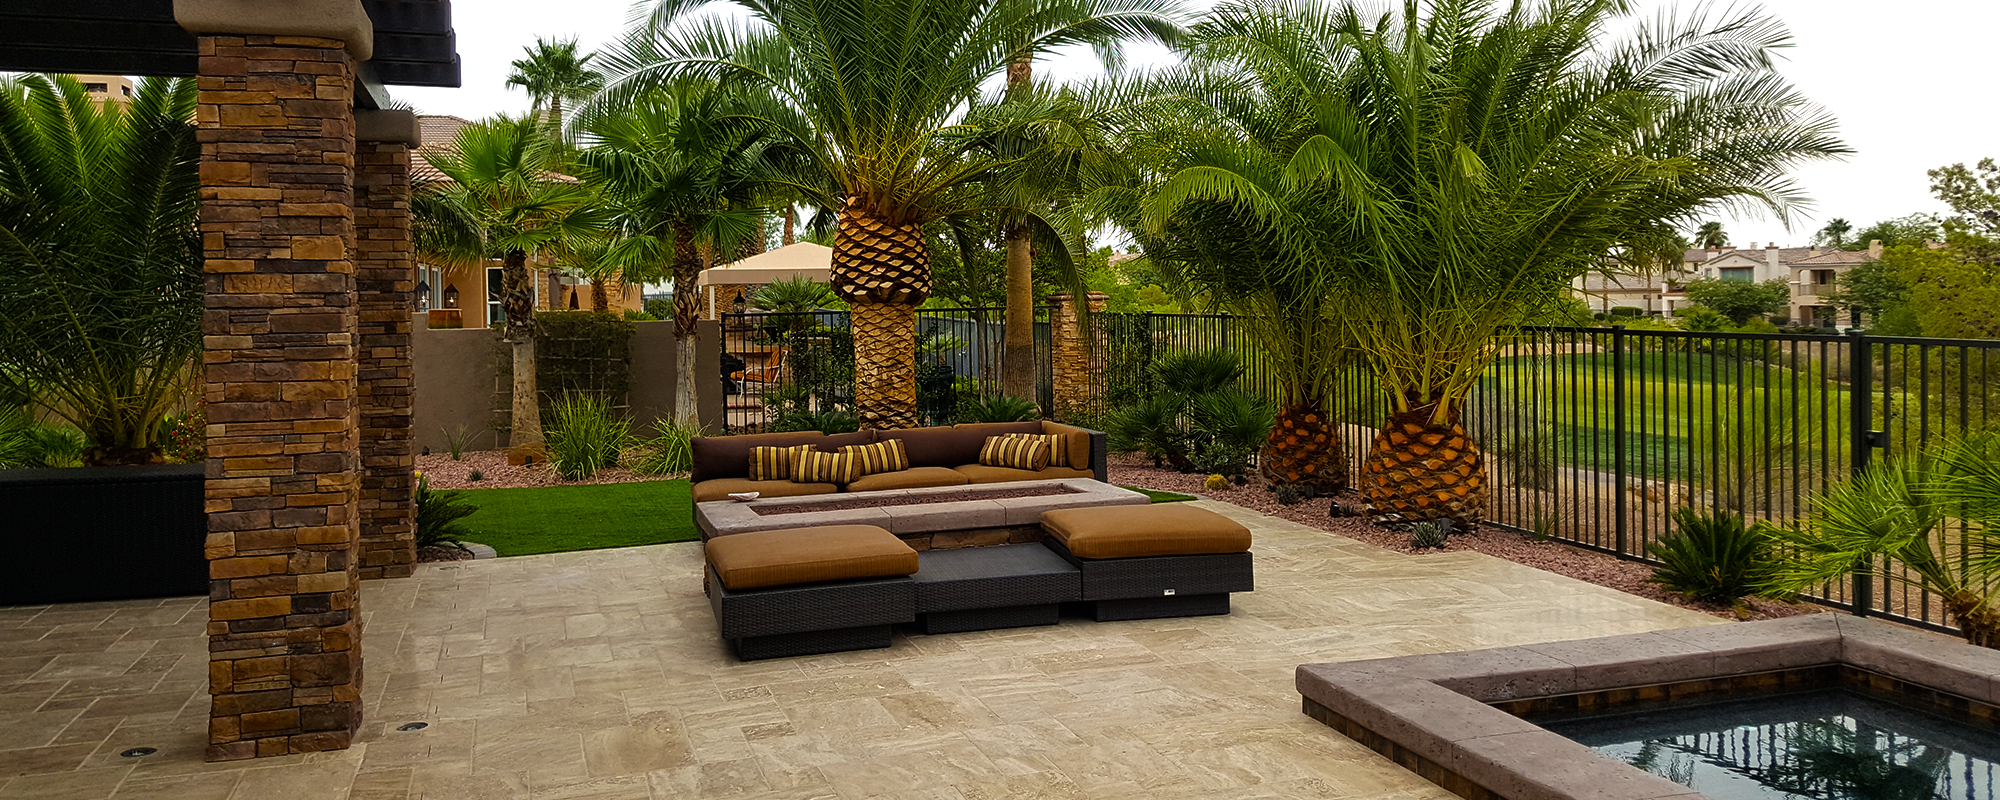 Las Vegas Landscape Company Maintenance And Design inside 15 Some of the Coolest Concepts of How to Improve Backyard Landscapers